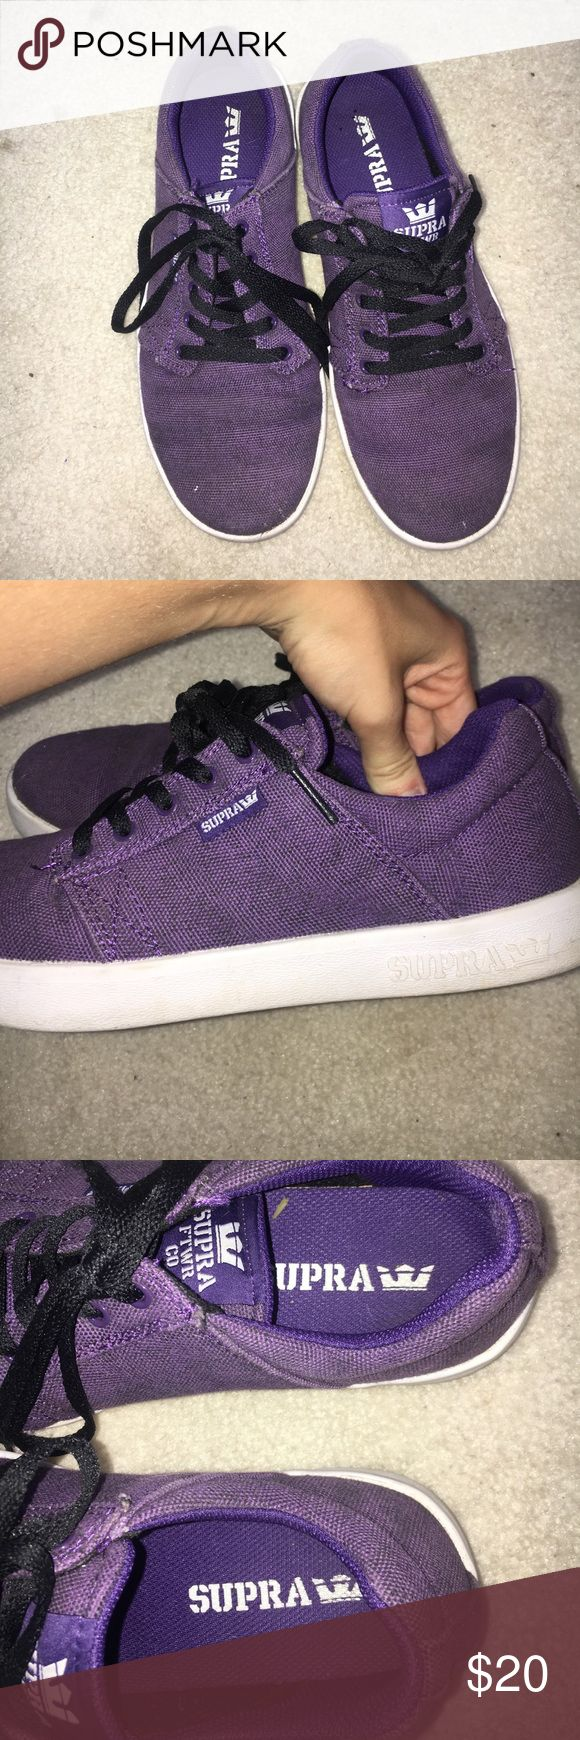 WORN ONCE SUPRAS GREAT CONDITION Supra Shoes Sneakers